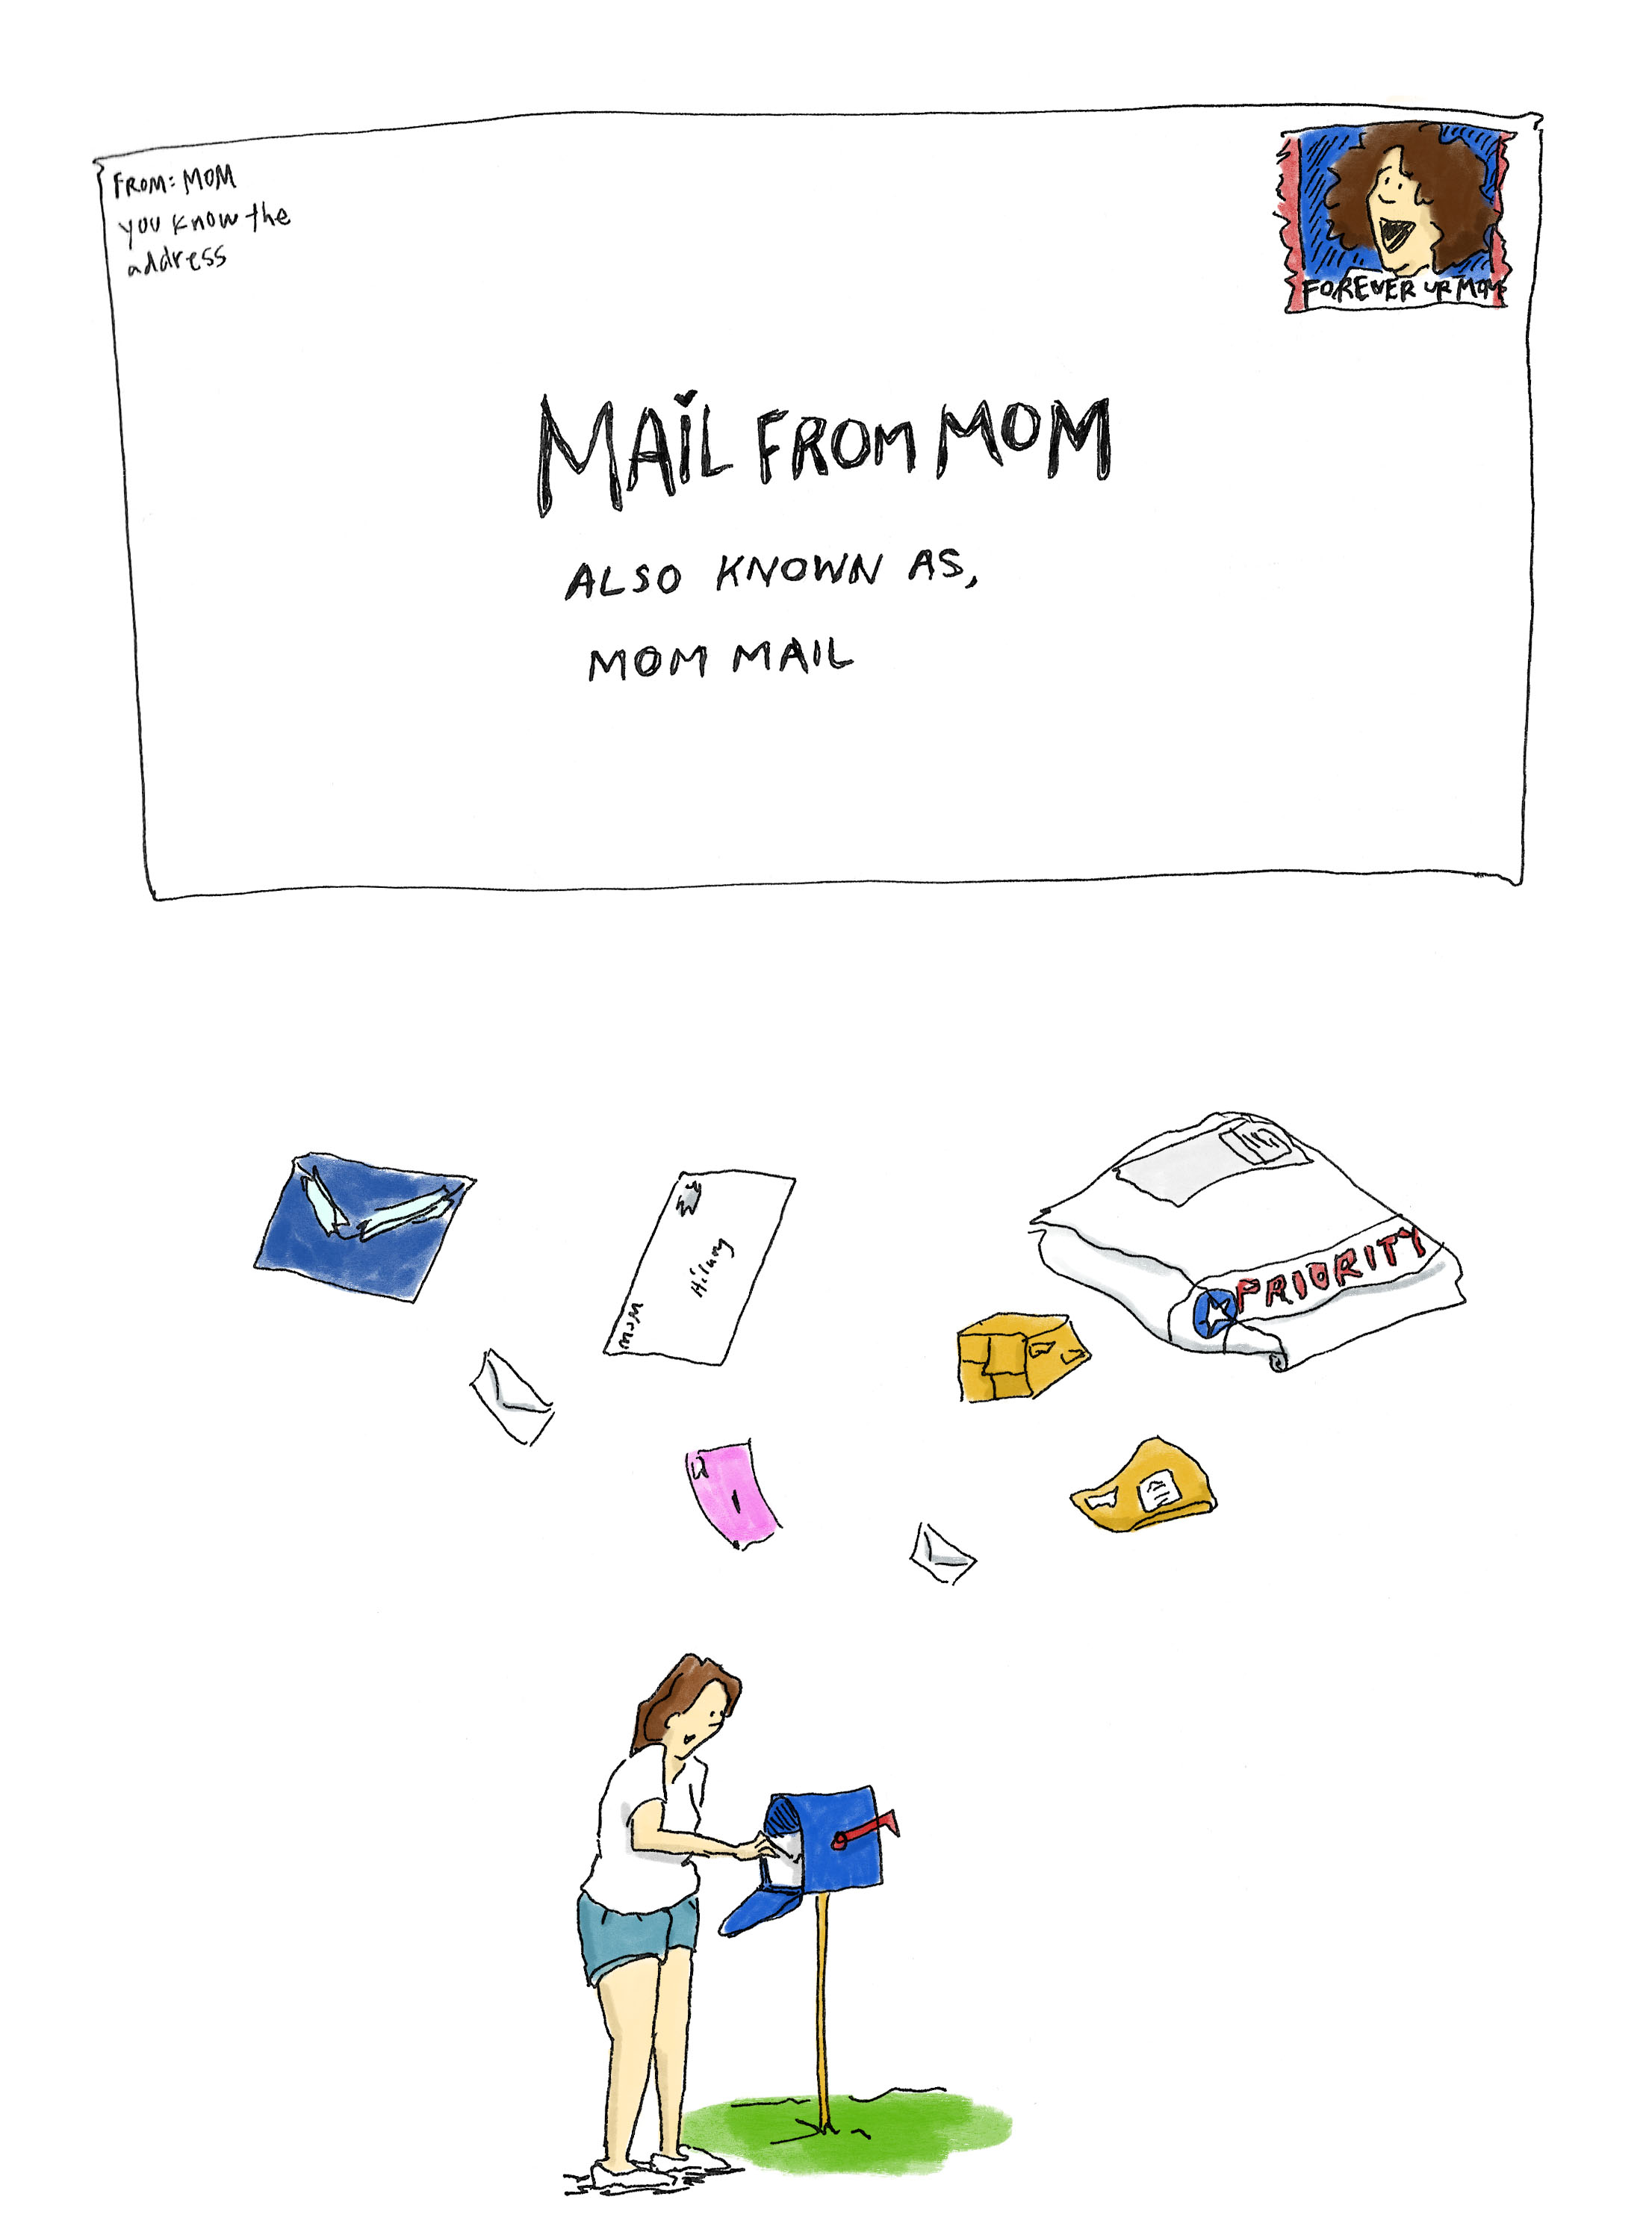 mommail-medium-1.jpg